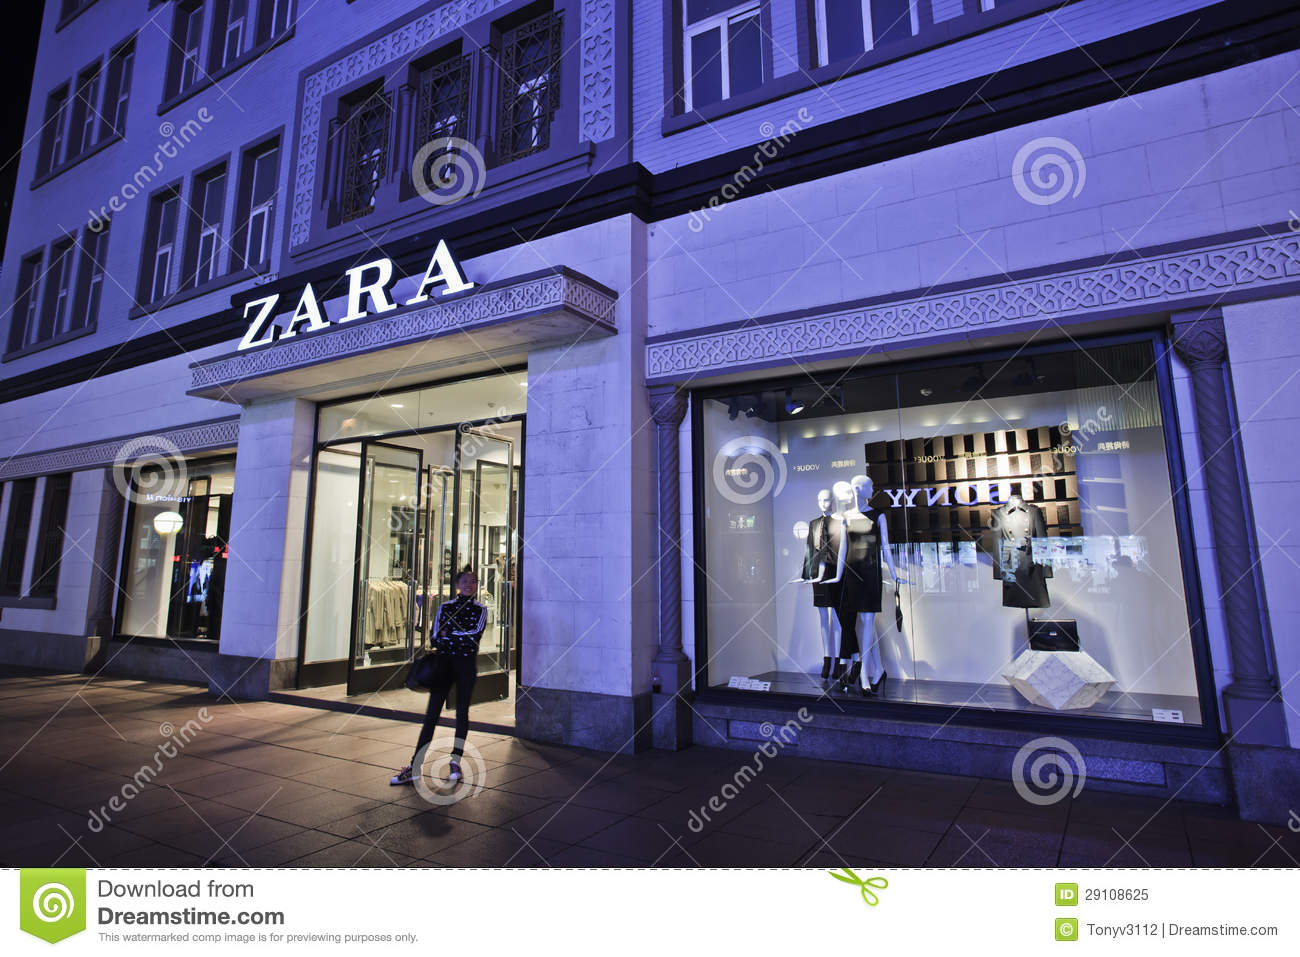 zara fashion store at night dalian china editorial image image 29108625. Black Bedroom Furniture Sets. Home Design Ideas